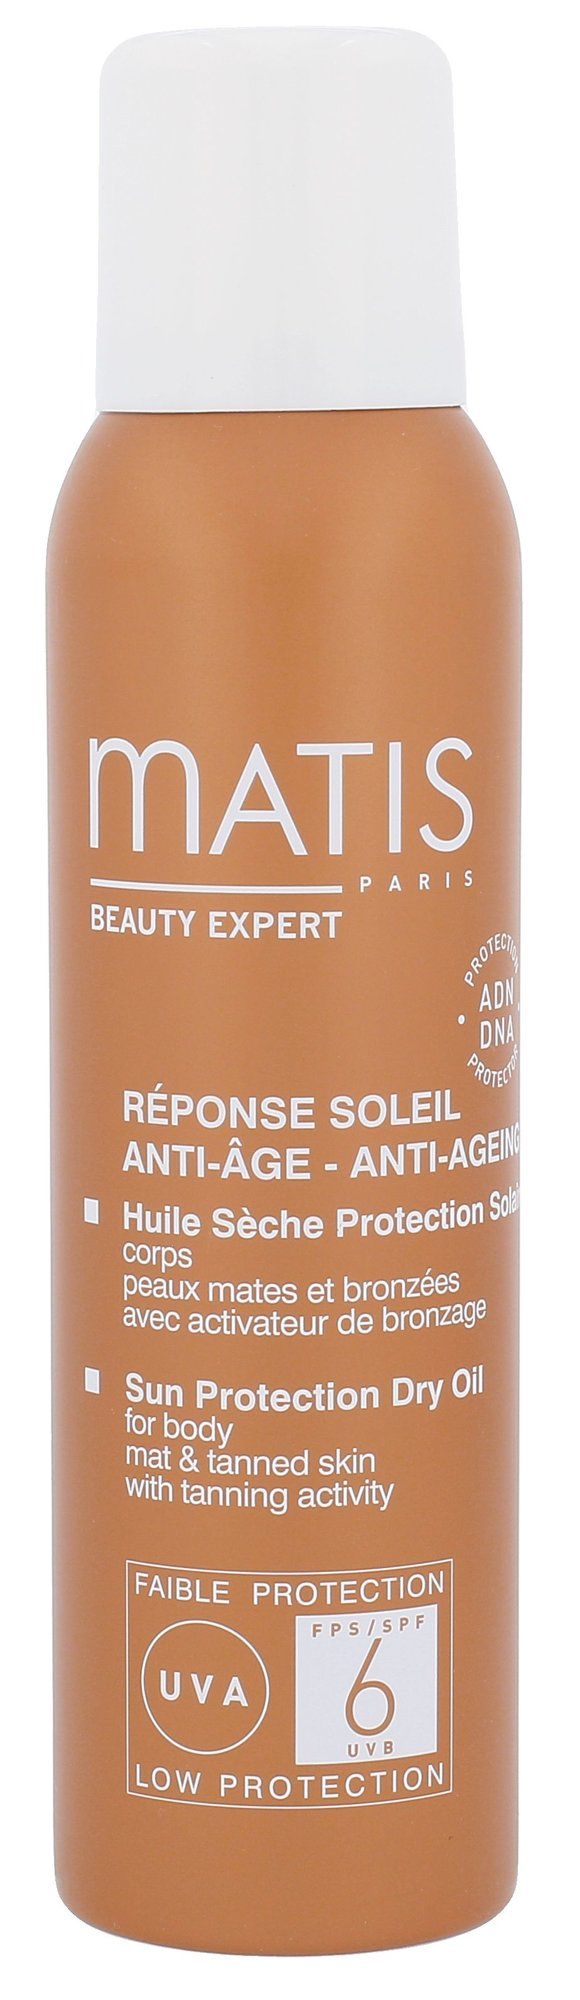 Matis Réponse Soleil Sun Protection Dry Oil SPF6 Cosmetic 125ml